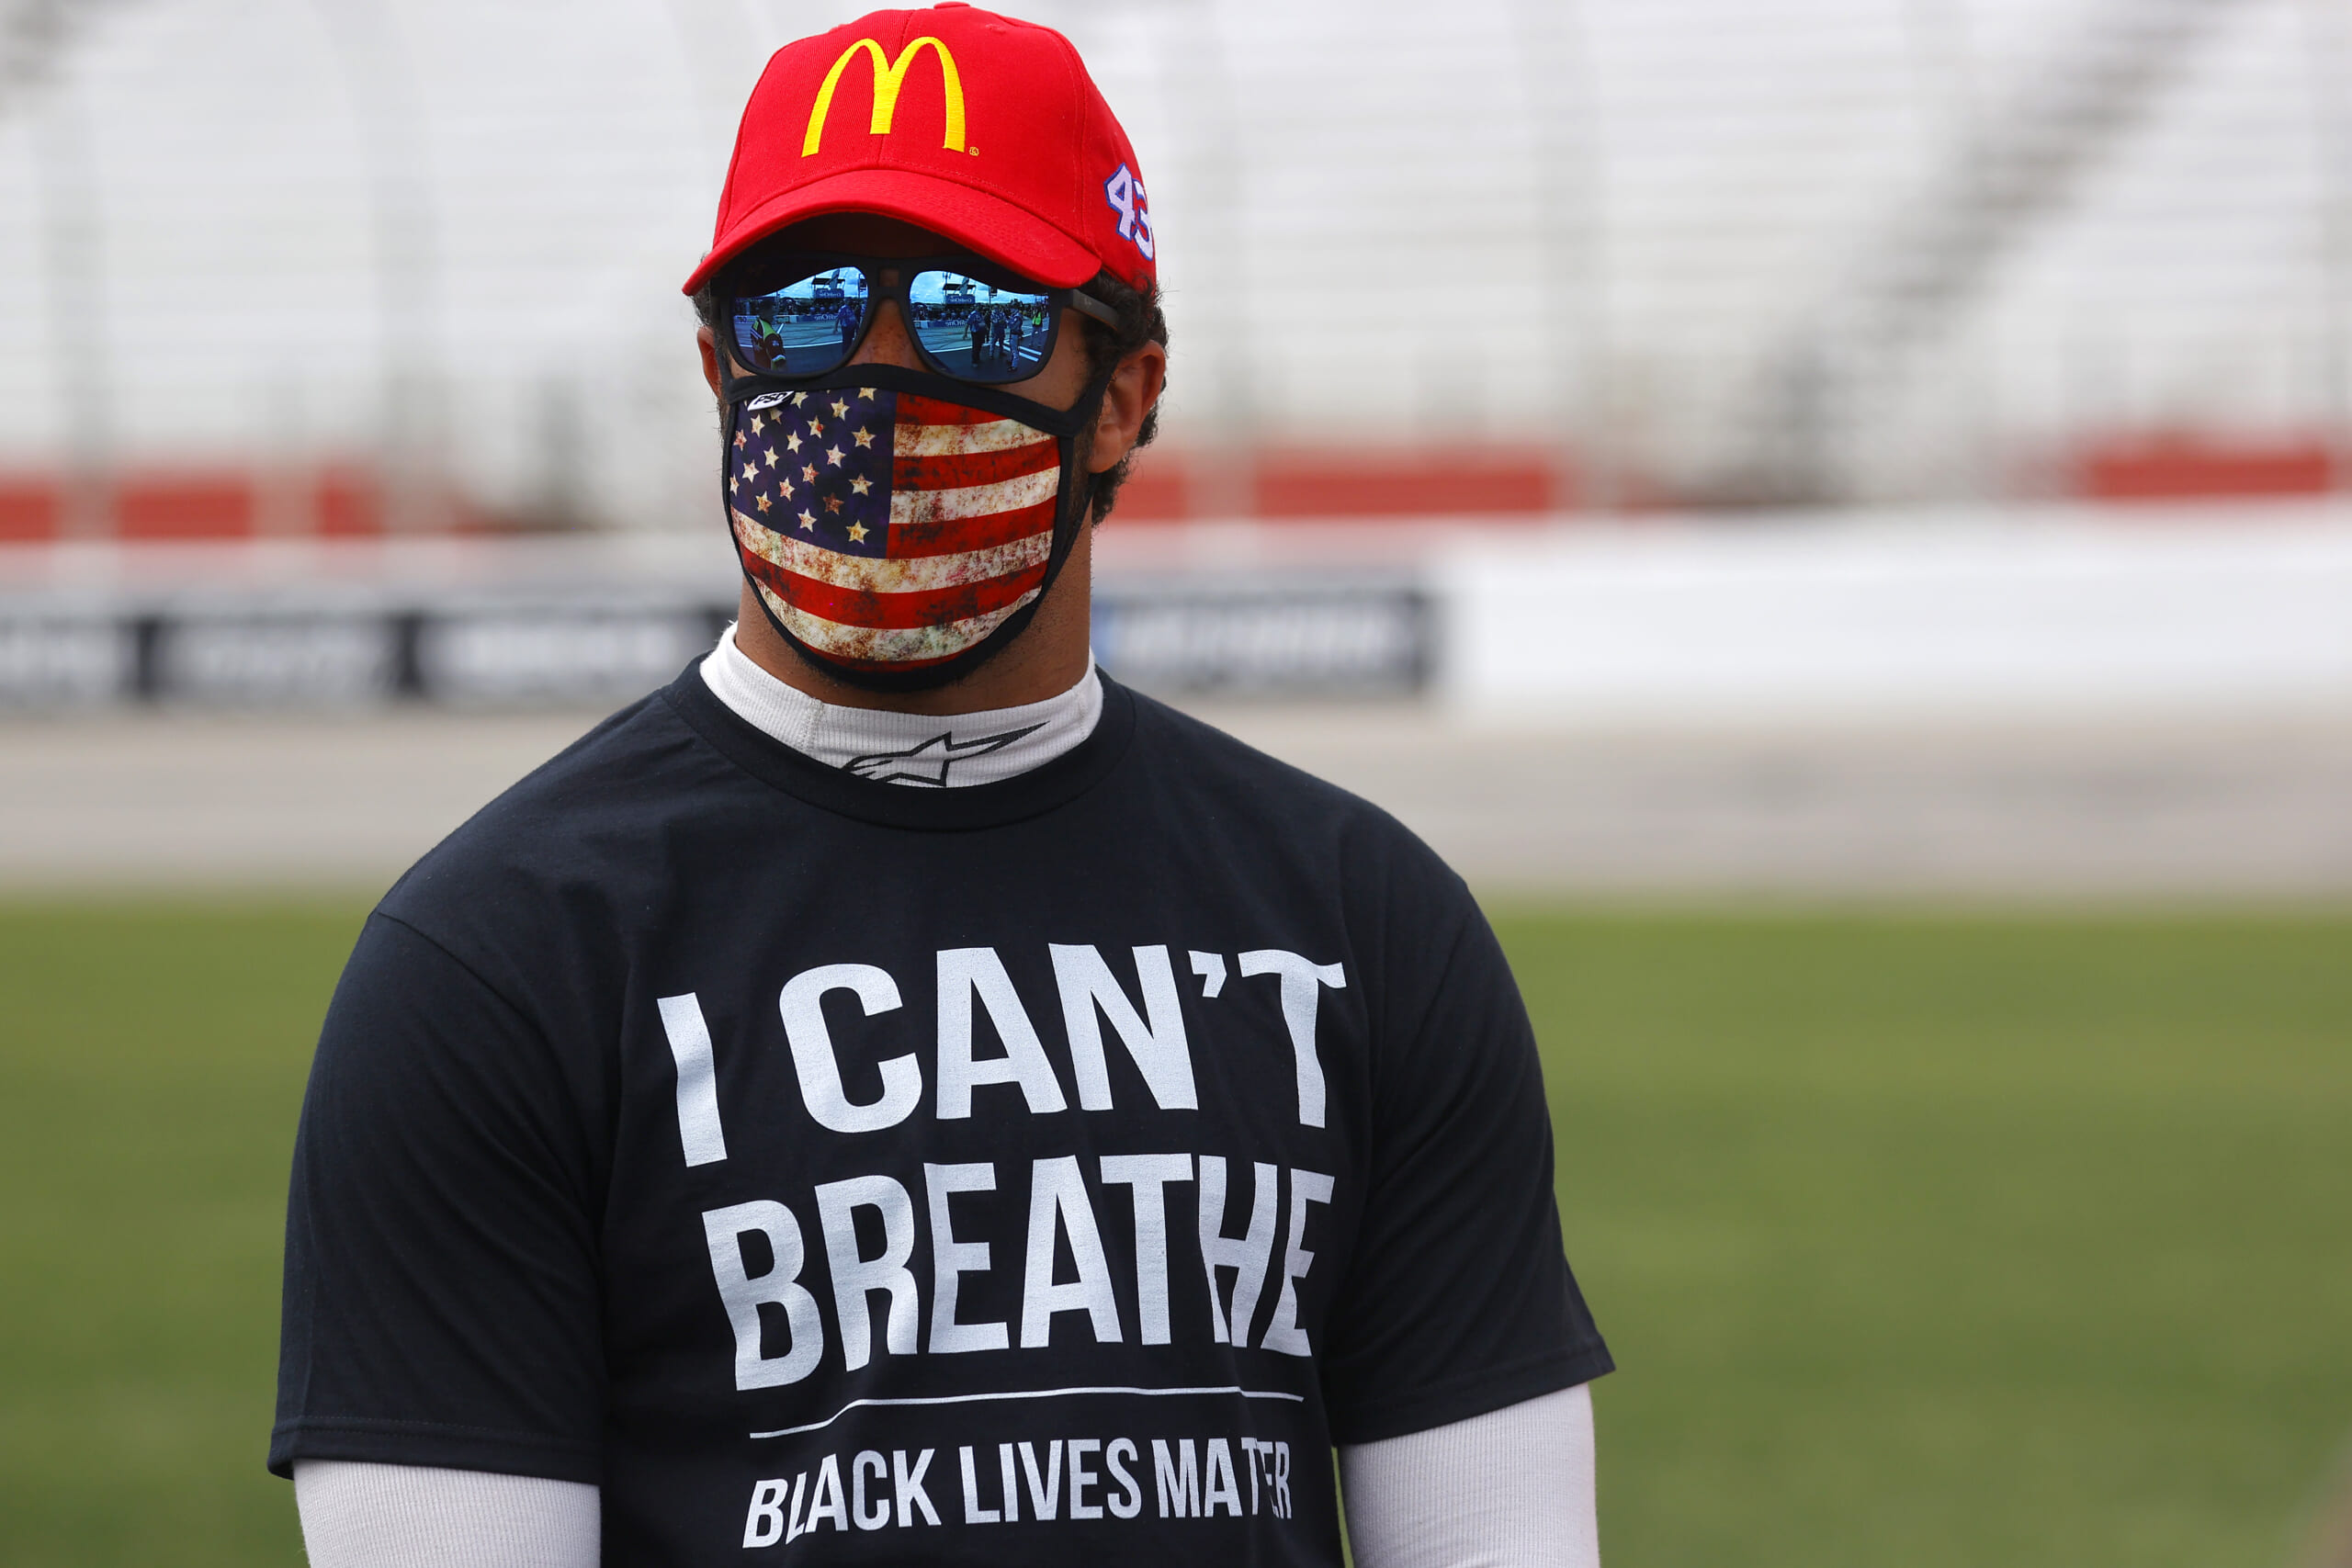 Bubba Wallace, driver of the #43 McDonald's Chevrolet, wears a